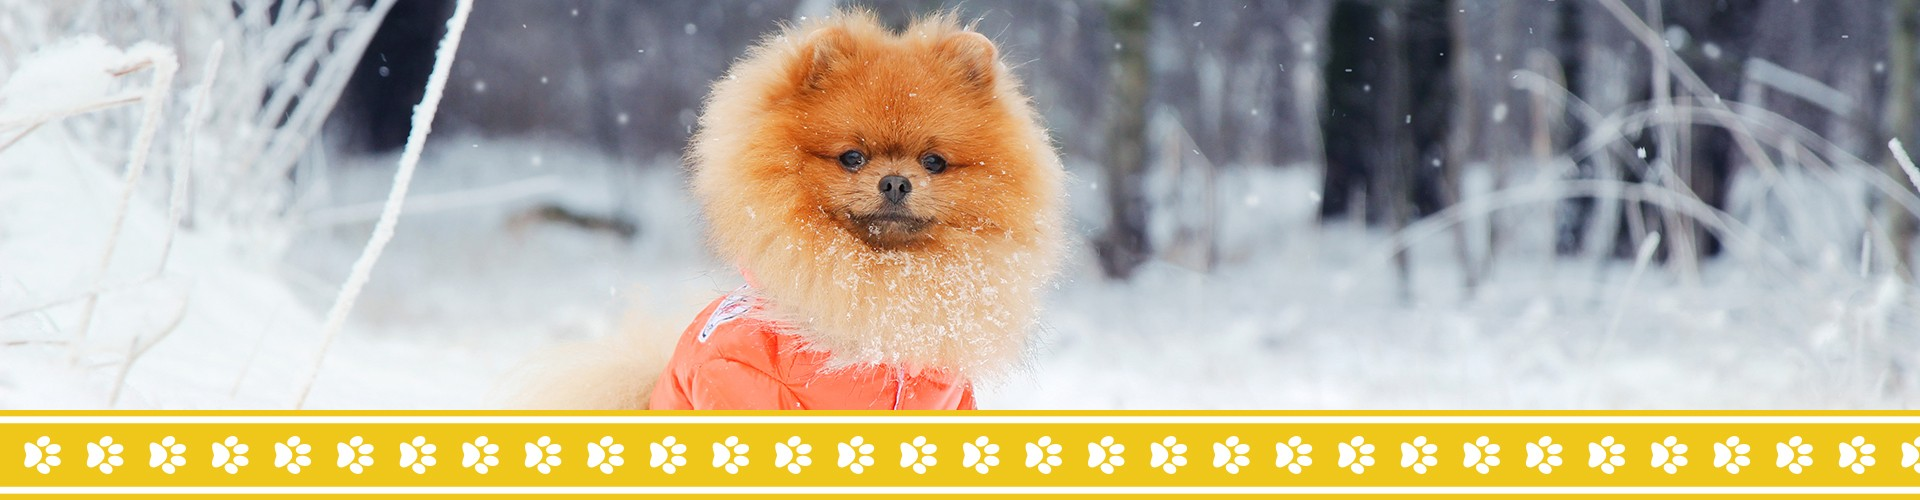 Cute dog in a winter jacket playing in the snow